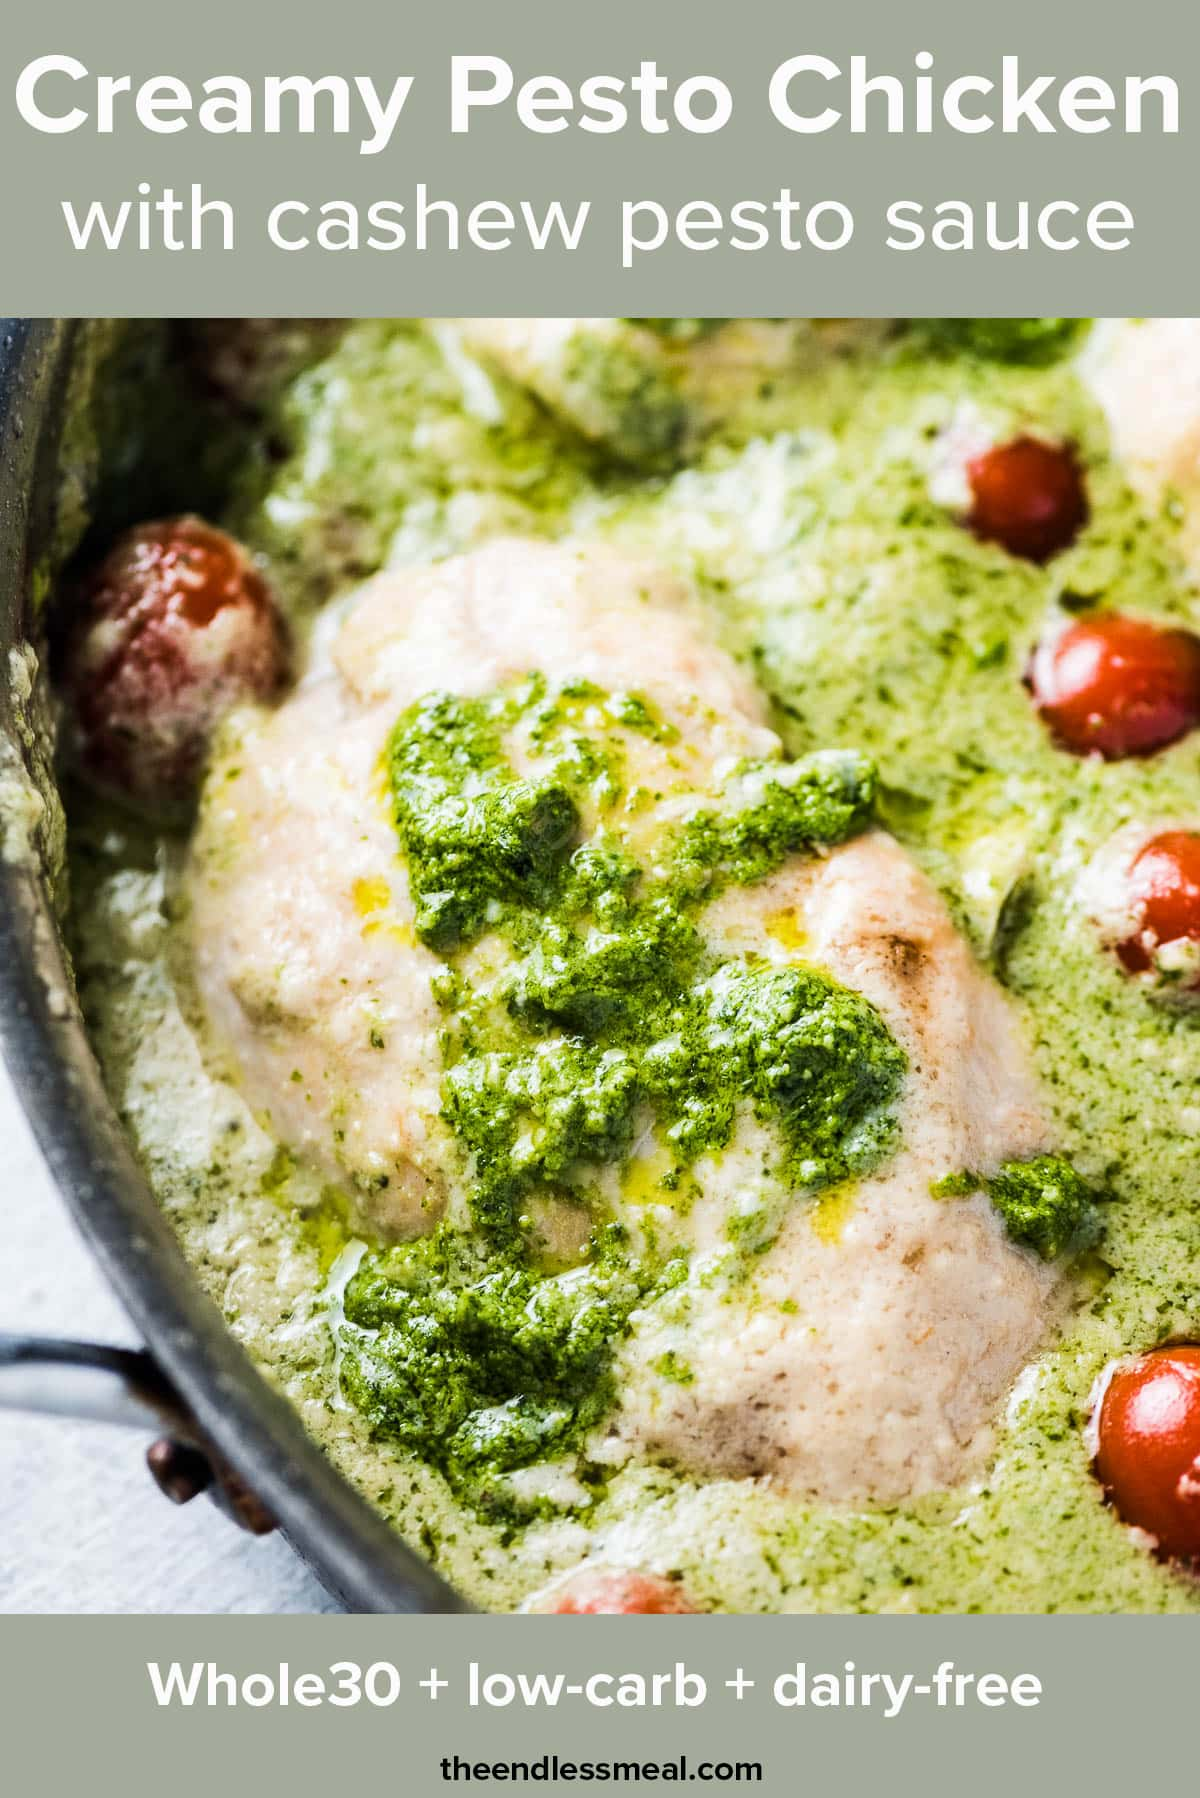 A close up of creamy pesto chicken in a cashew pesto sauce with the recipe title on top of the picture.